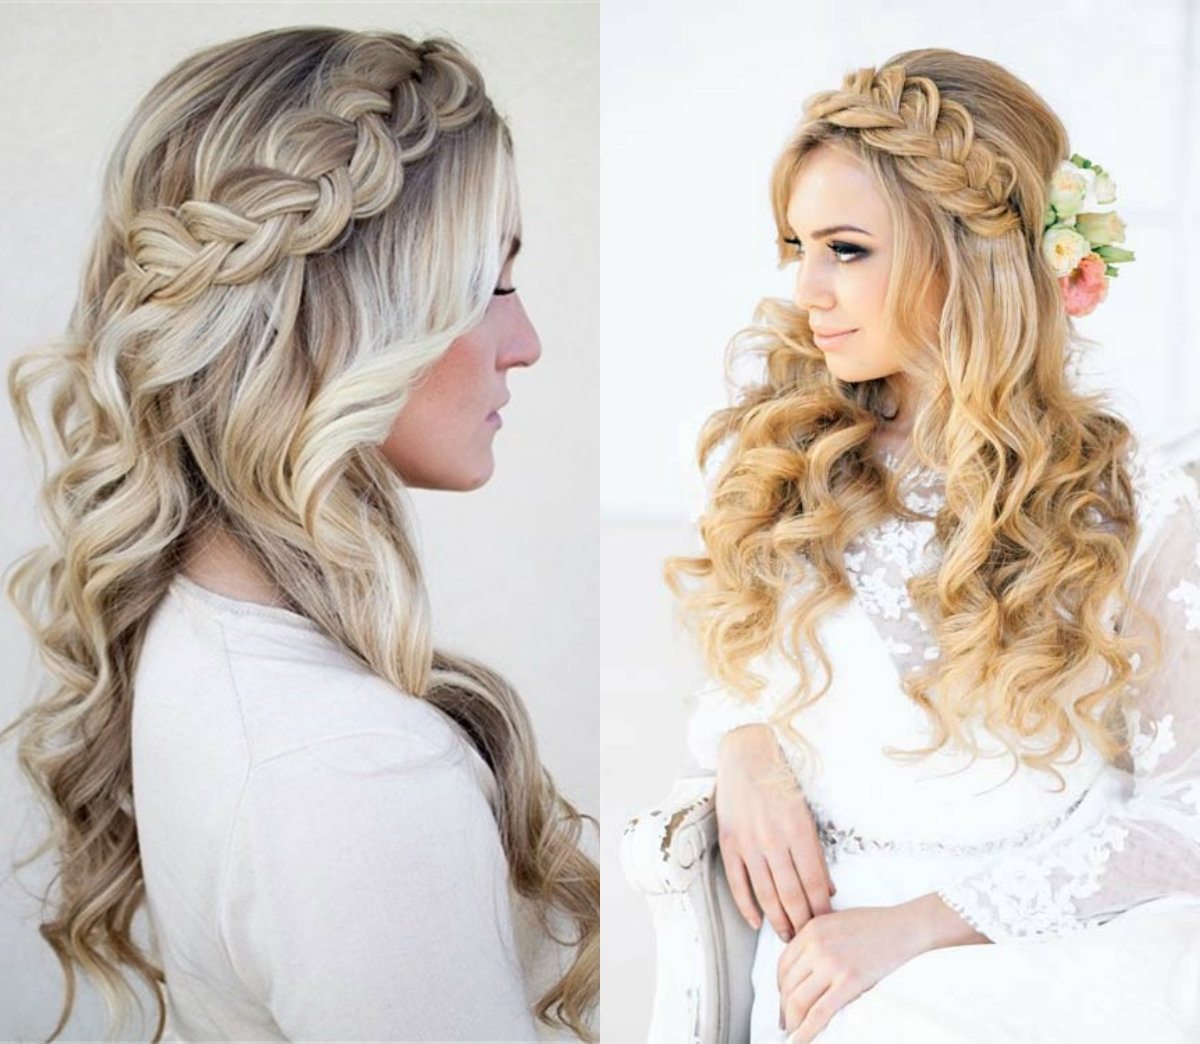 Favorite Down Braided Hairstyles Pertaining To Classy Choice Of Half Up And Half Down Wedding Hairstyles For Brides (View 6 of 15)